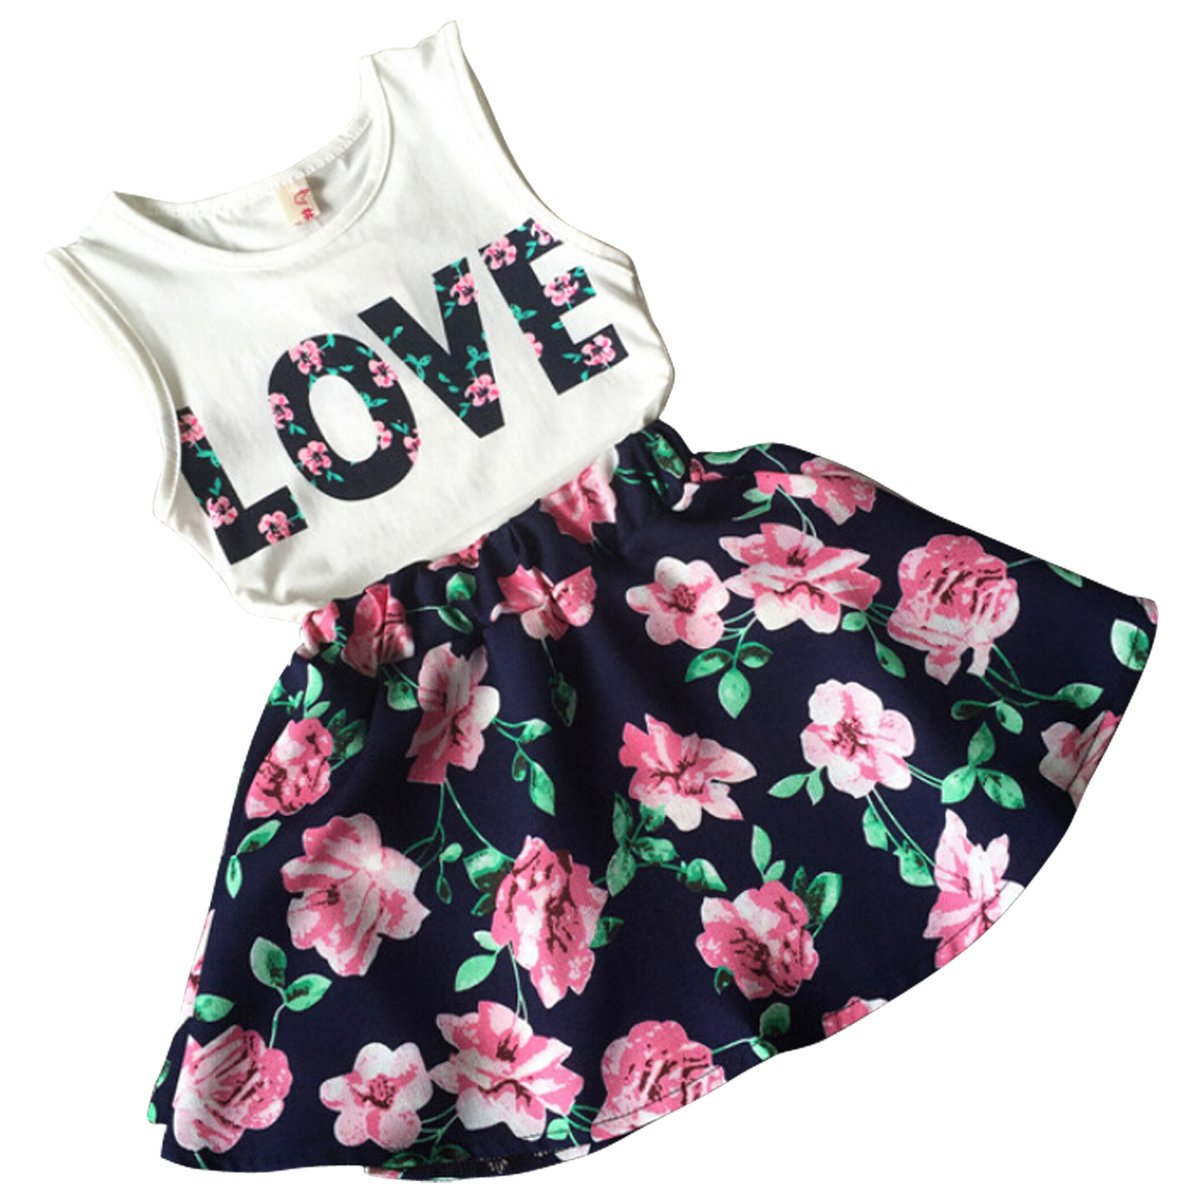 bd982ef3943 Jastore Girls Letter Love Flower Clothing Sets Top+Short Skirt Kids Clothes